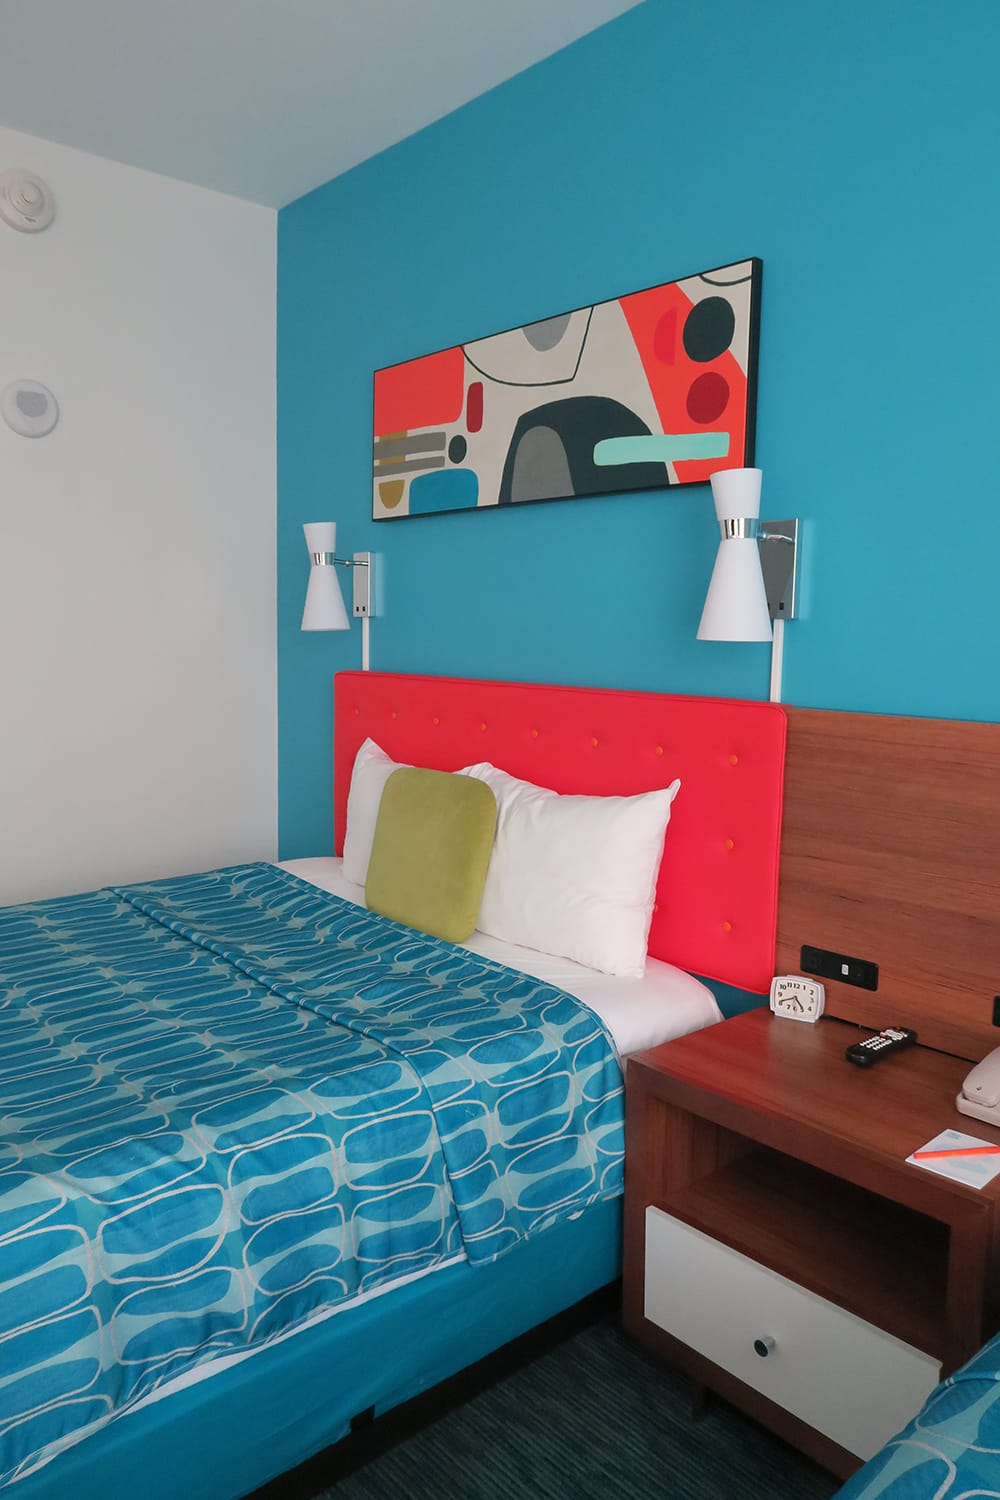 Not sure where to stay when visiting Universal Studios Orlando? See why we think Cabana Bay is the best on-site resort, especially for families!